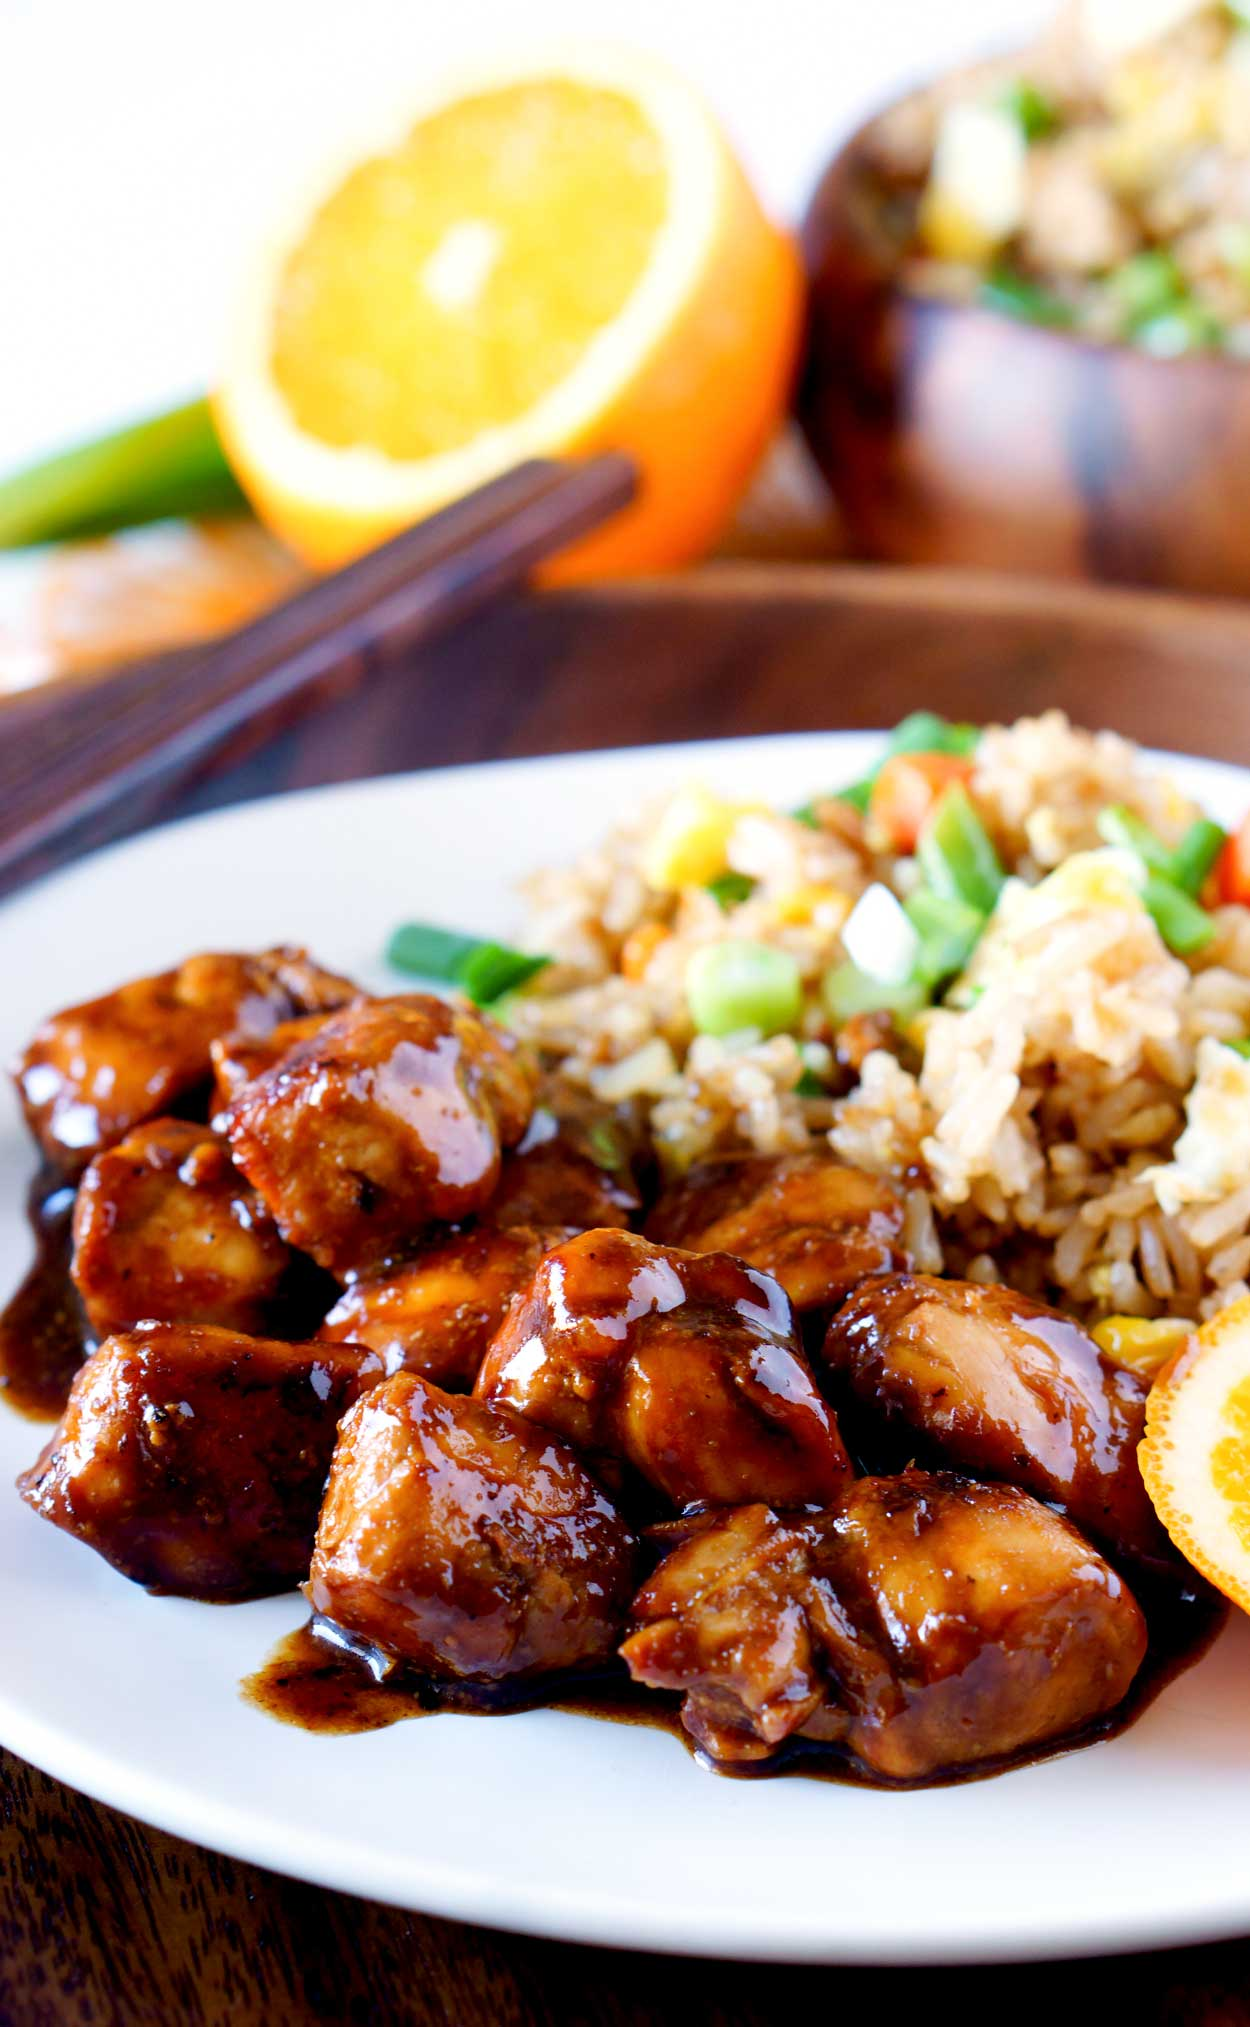 My favorite Orange Chicken recipe for quick and easy dinners.